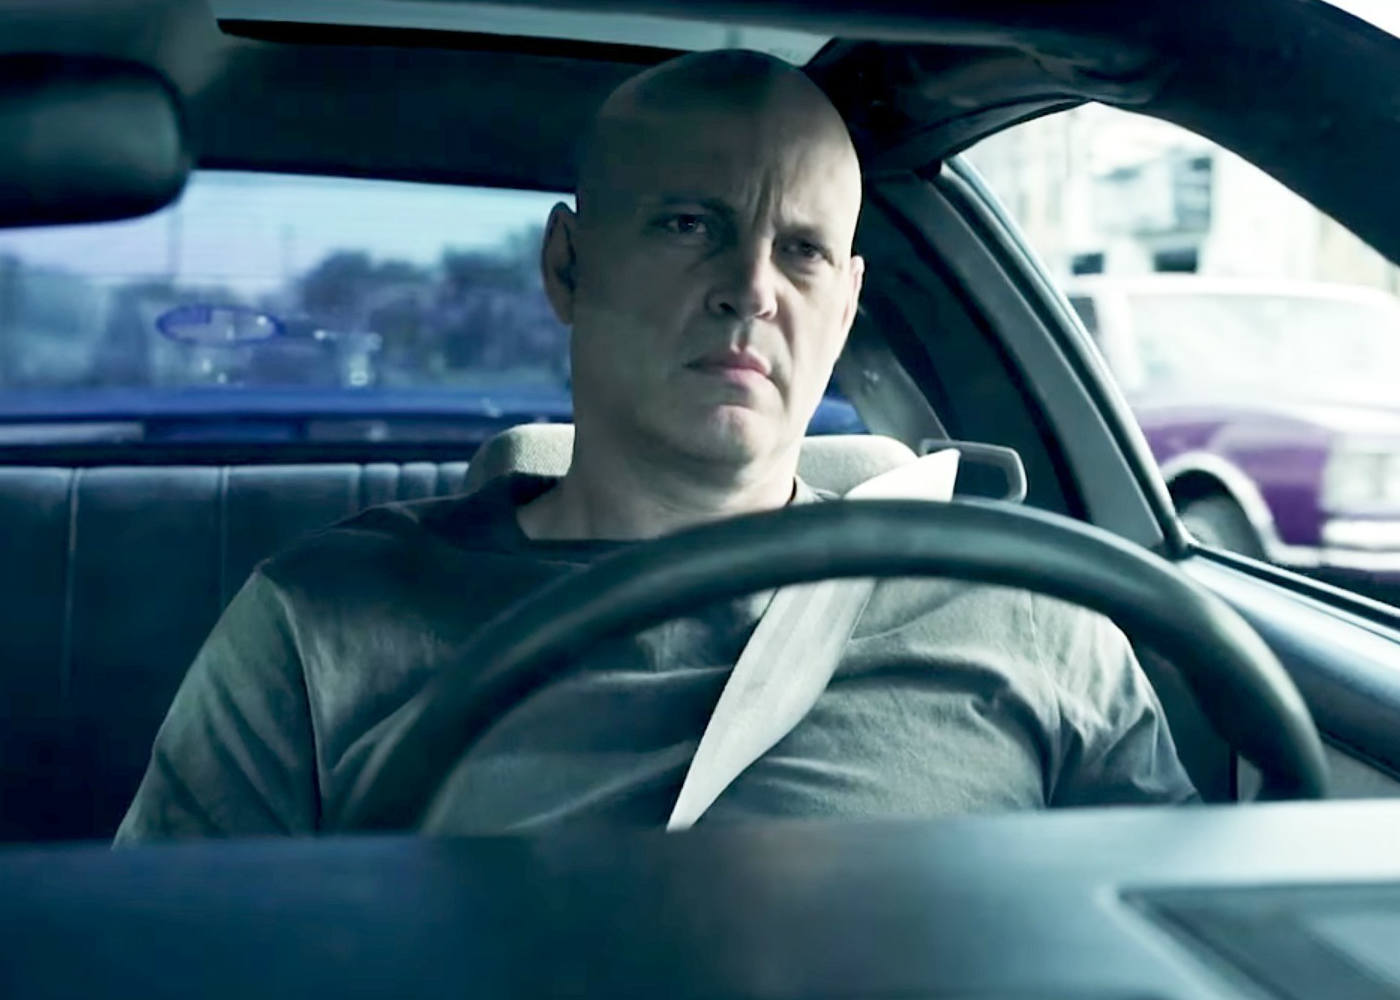 LFF 2017: Vince Vaughn Delivers a KO in 'Brawl in Cell Block 99'